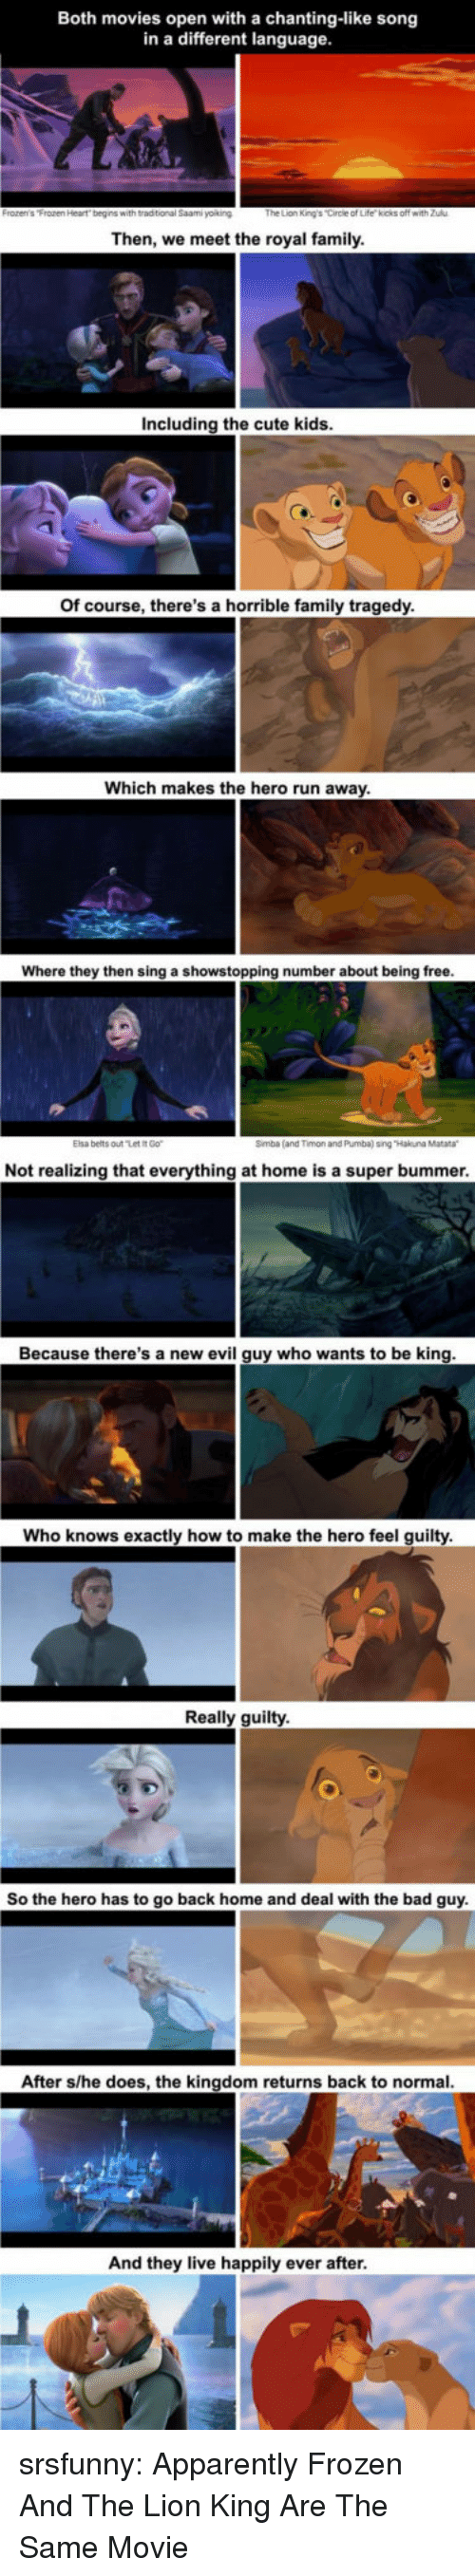 bummer: Both movies open with a chanting-like song  in a different language  Then, we meet the royal family  Including the cute kids  Of course, there's a horrible family tragedy  Which makes the hero run away  Where they then sing a showstopping number about being free  Elsa belts outt  Simba (and Timon and Pumba) sing Hakuna Matara  Not realizing that everything at home is a super bummer  Because there's a new evil guy who wants to be king  Who knows exactly how to make the hero feel guilty  Really guilty  So the hero has to go back home and deal with the bad guy  After s/he does, the kingdom returns back to normal  And they live happily ever after srsfunny:  Apparently Frozen And The Lion King Are The Same Movie